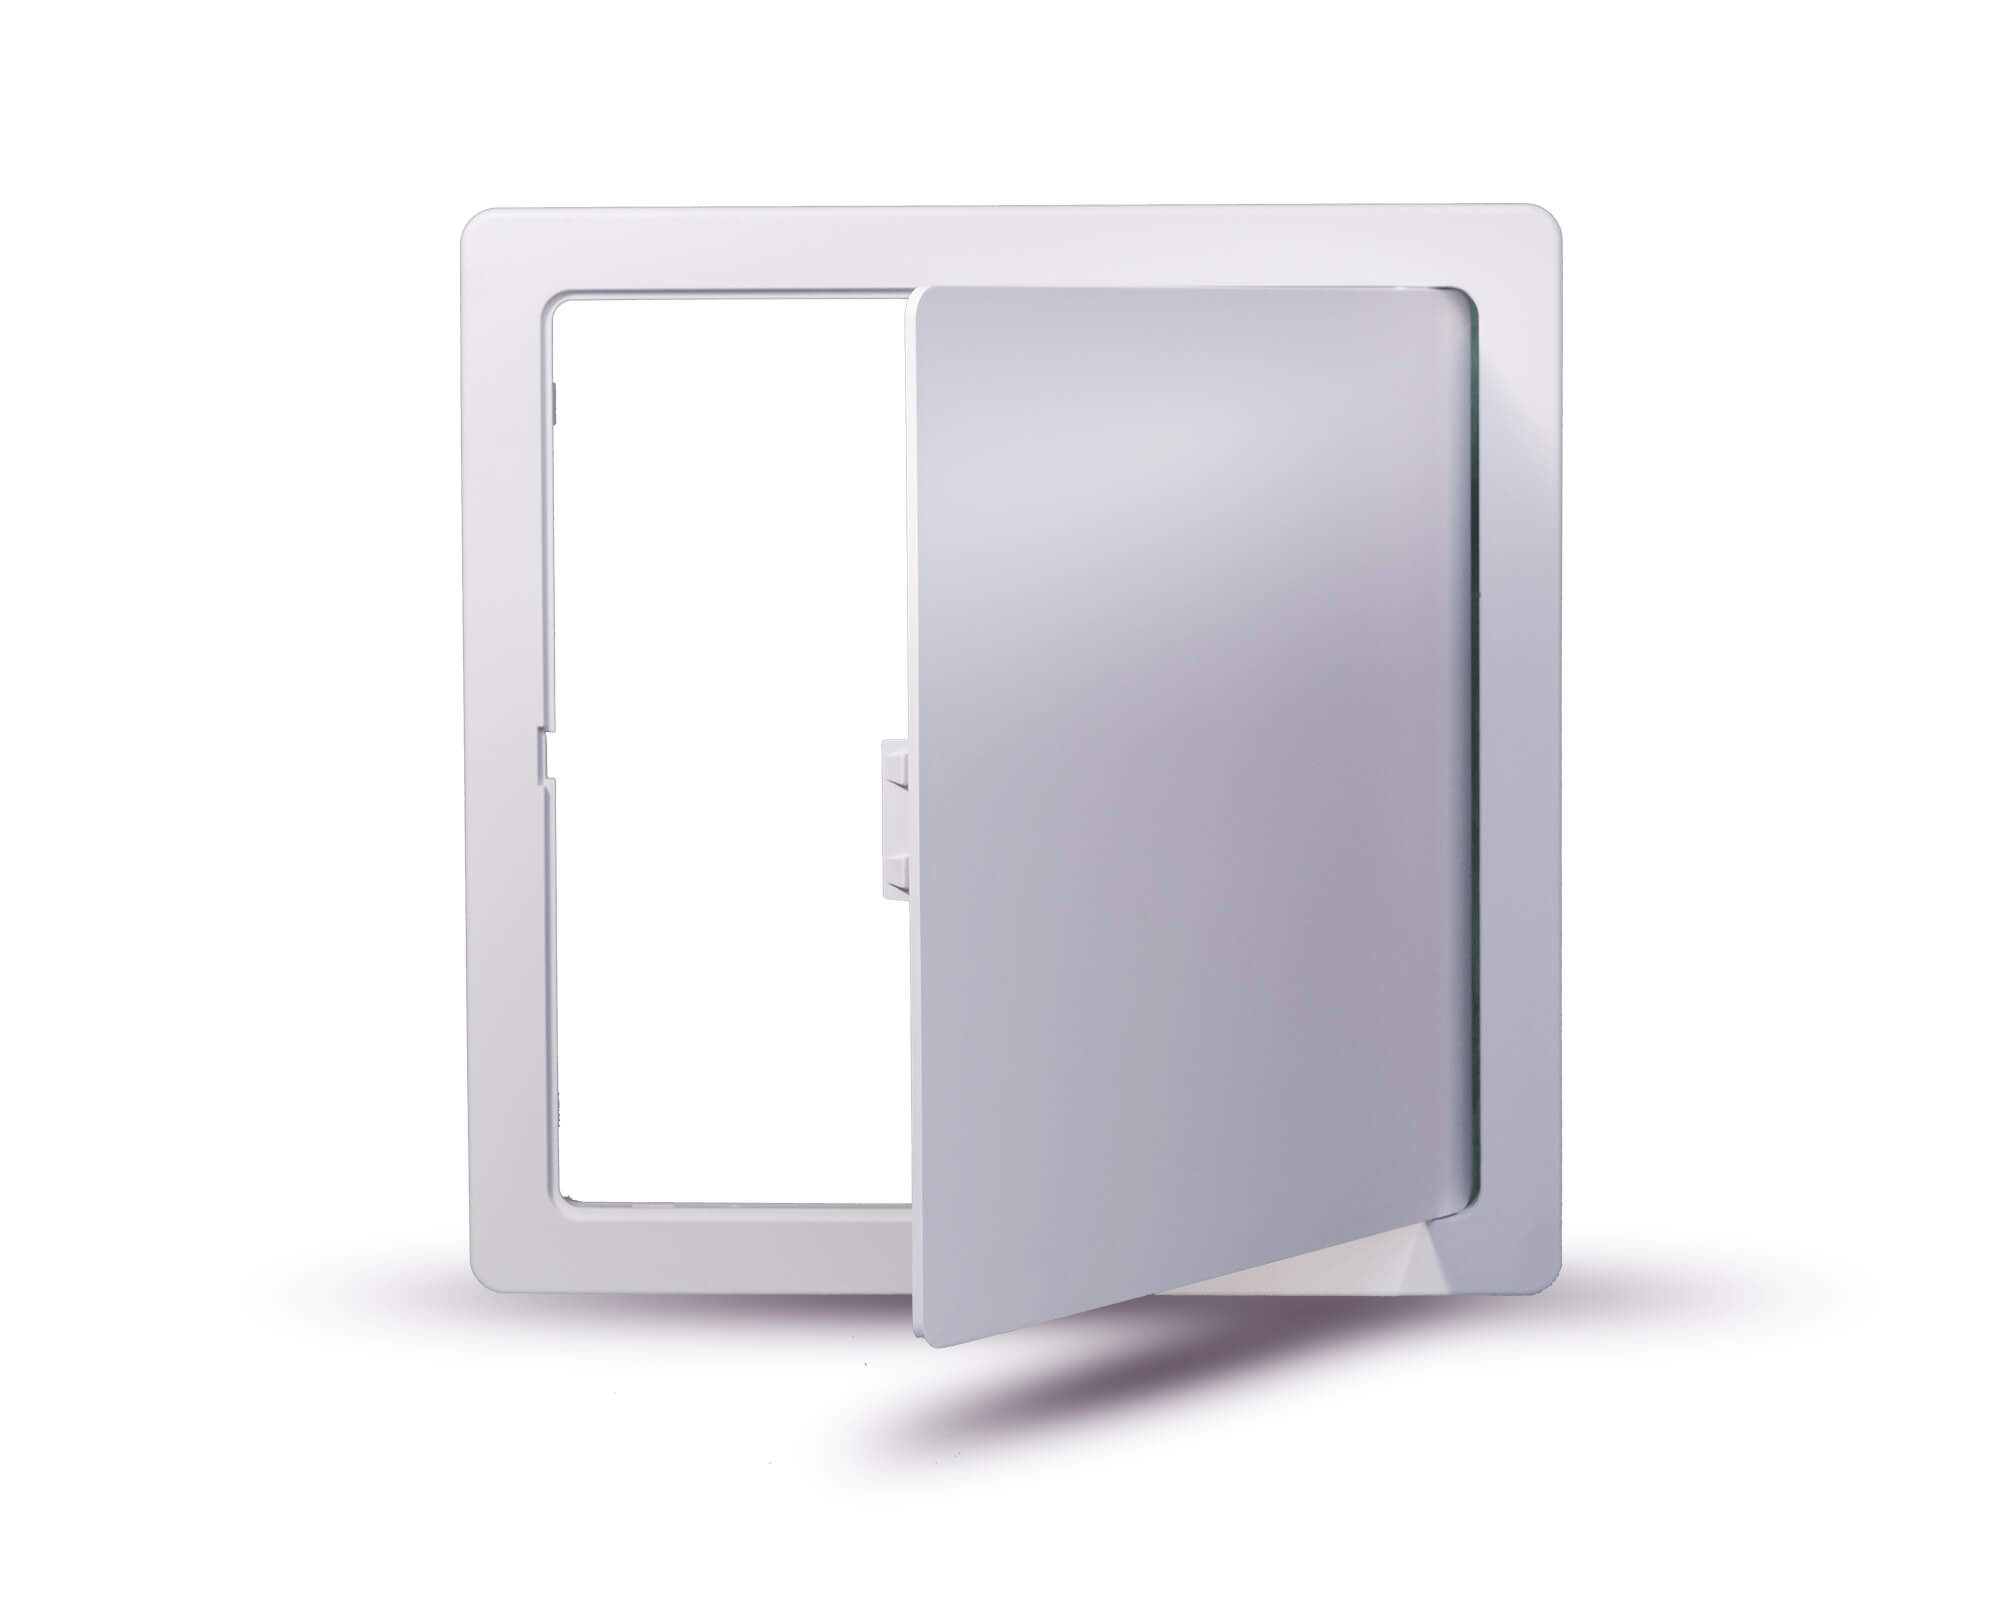 300 X 300 Mm Plastic Access Panel Picture Frame